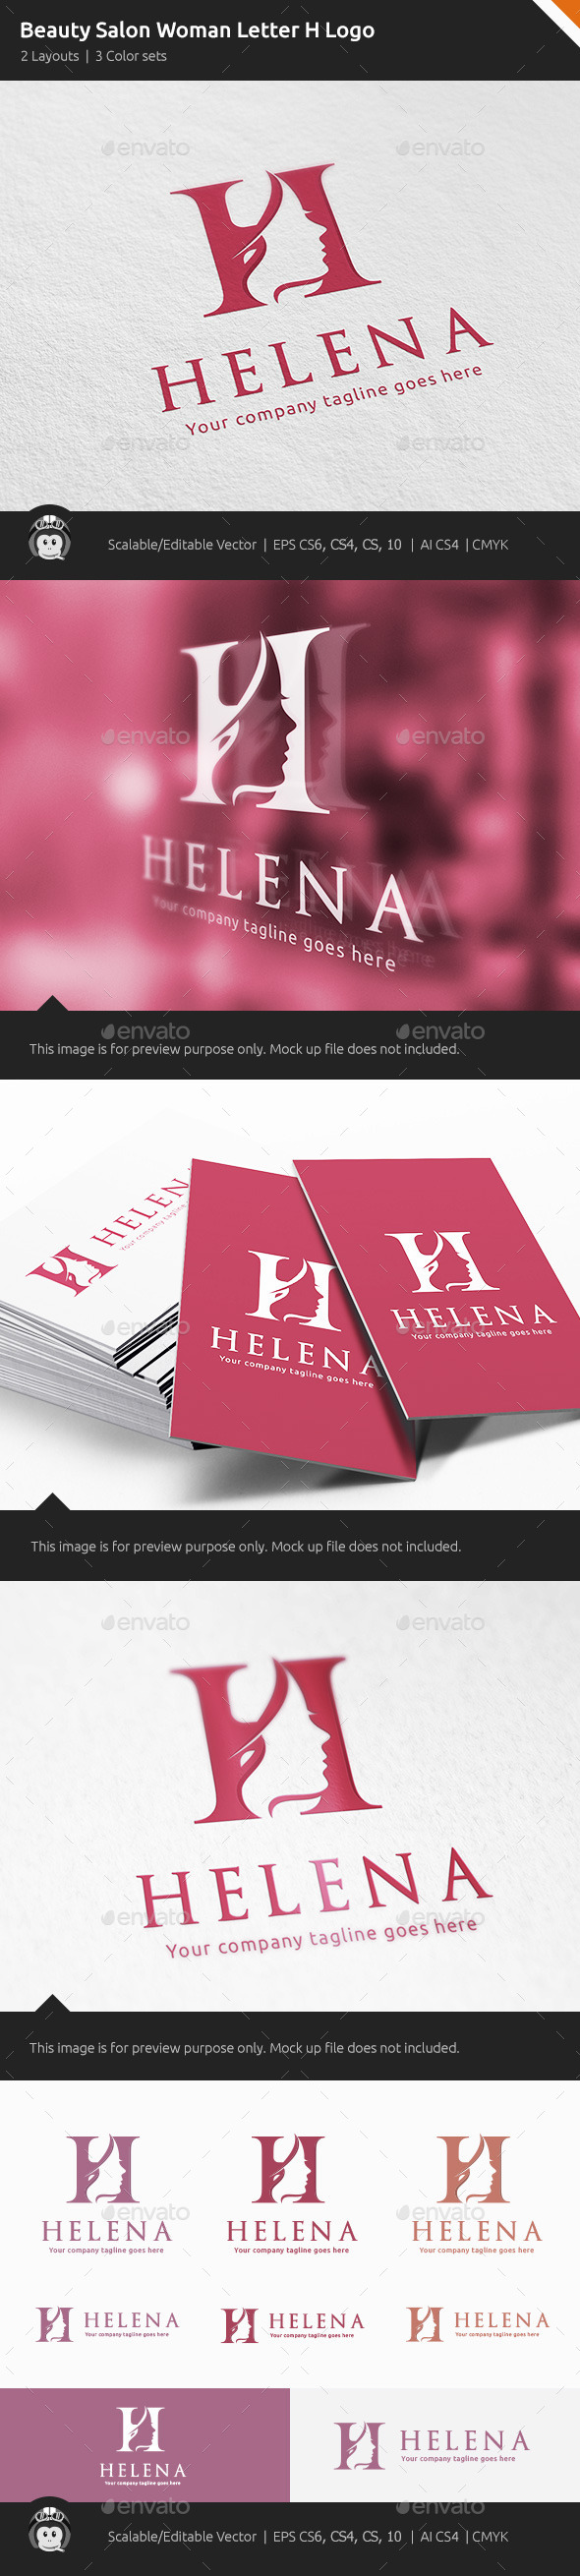 GraphicRiver Beauty Salon Woman Letter H Logo 11262899